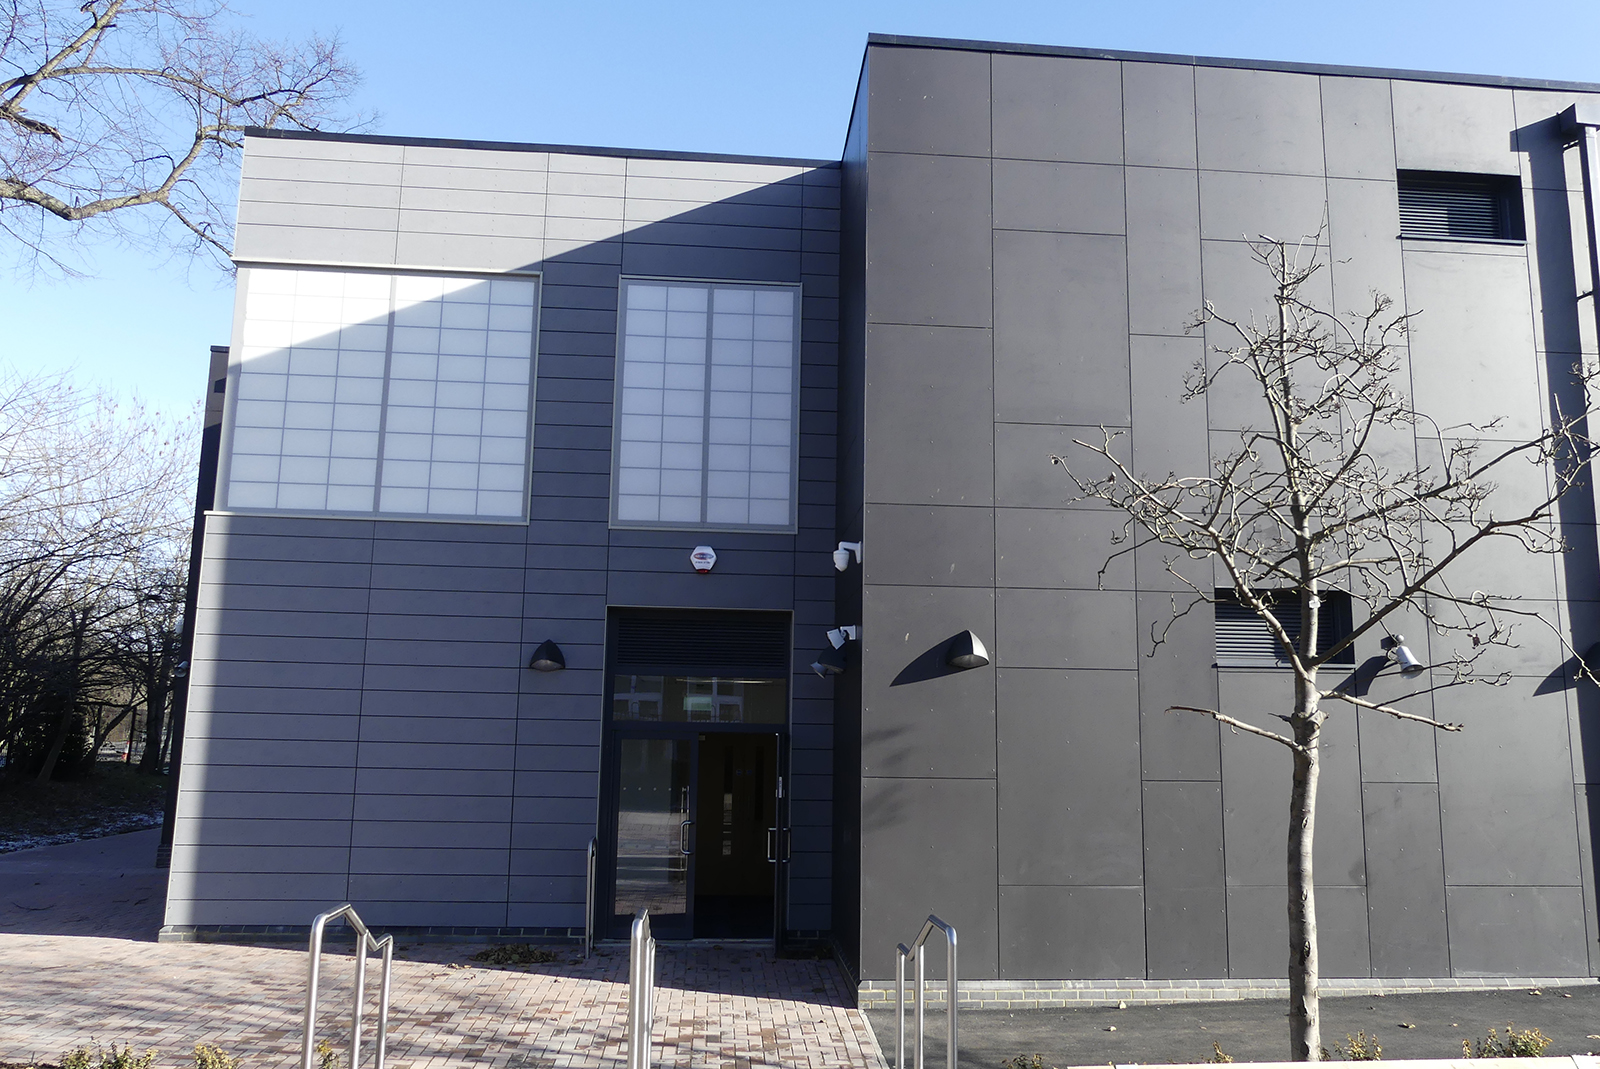 Our newly built block - February 2021